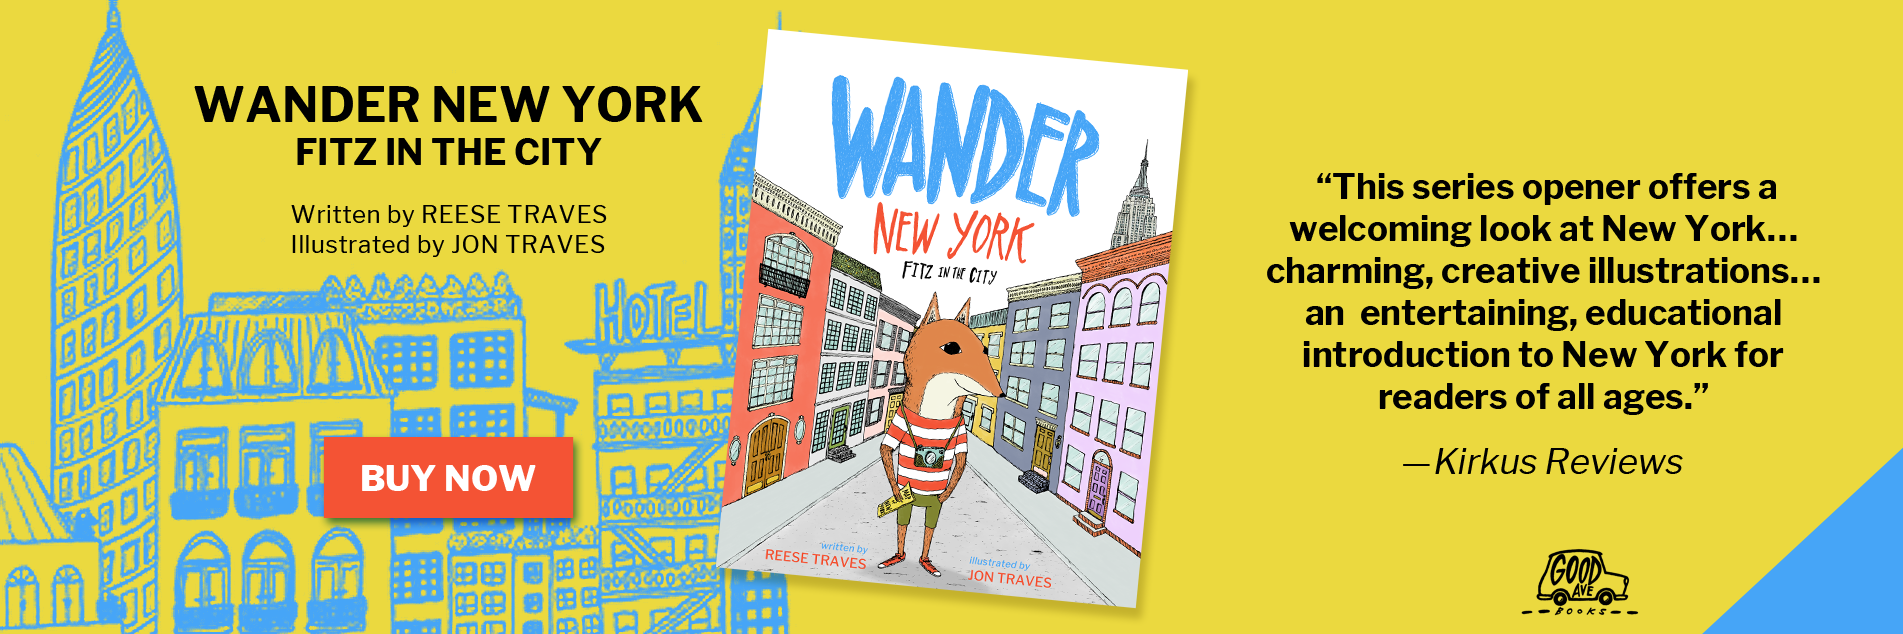 Jon Traves - Picture Book Illustrator - Buy Wander New York Book Now